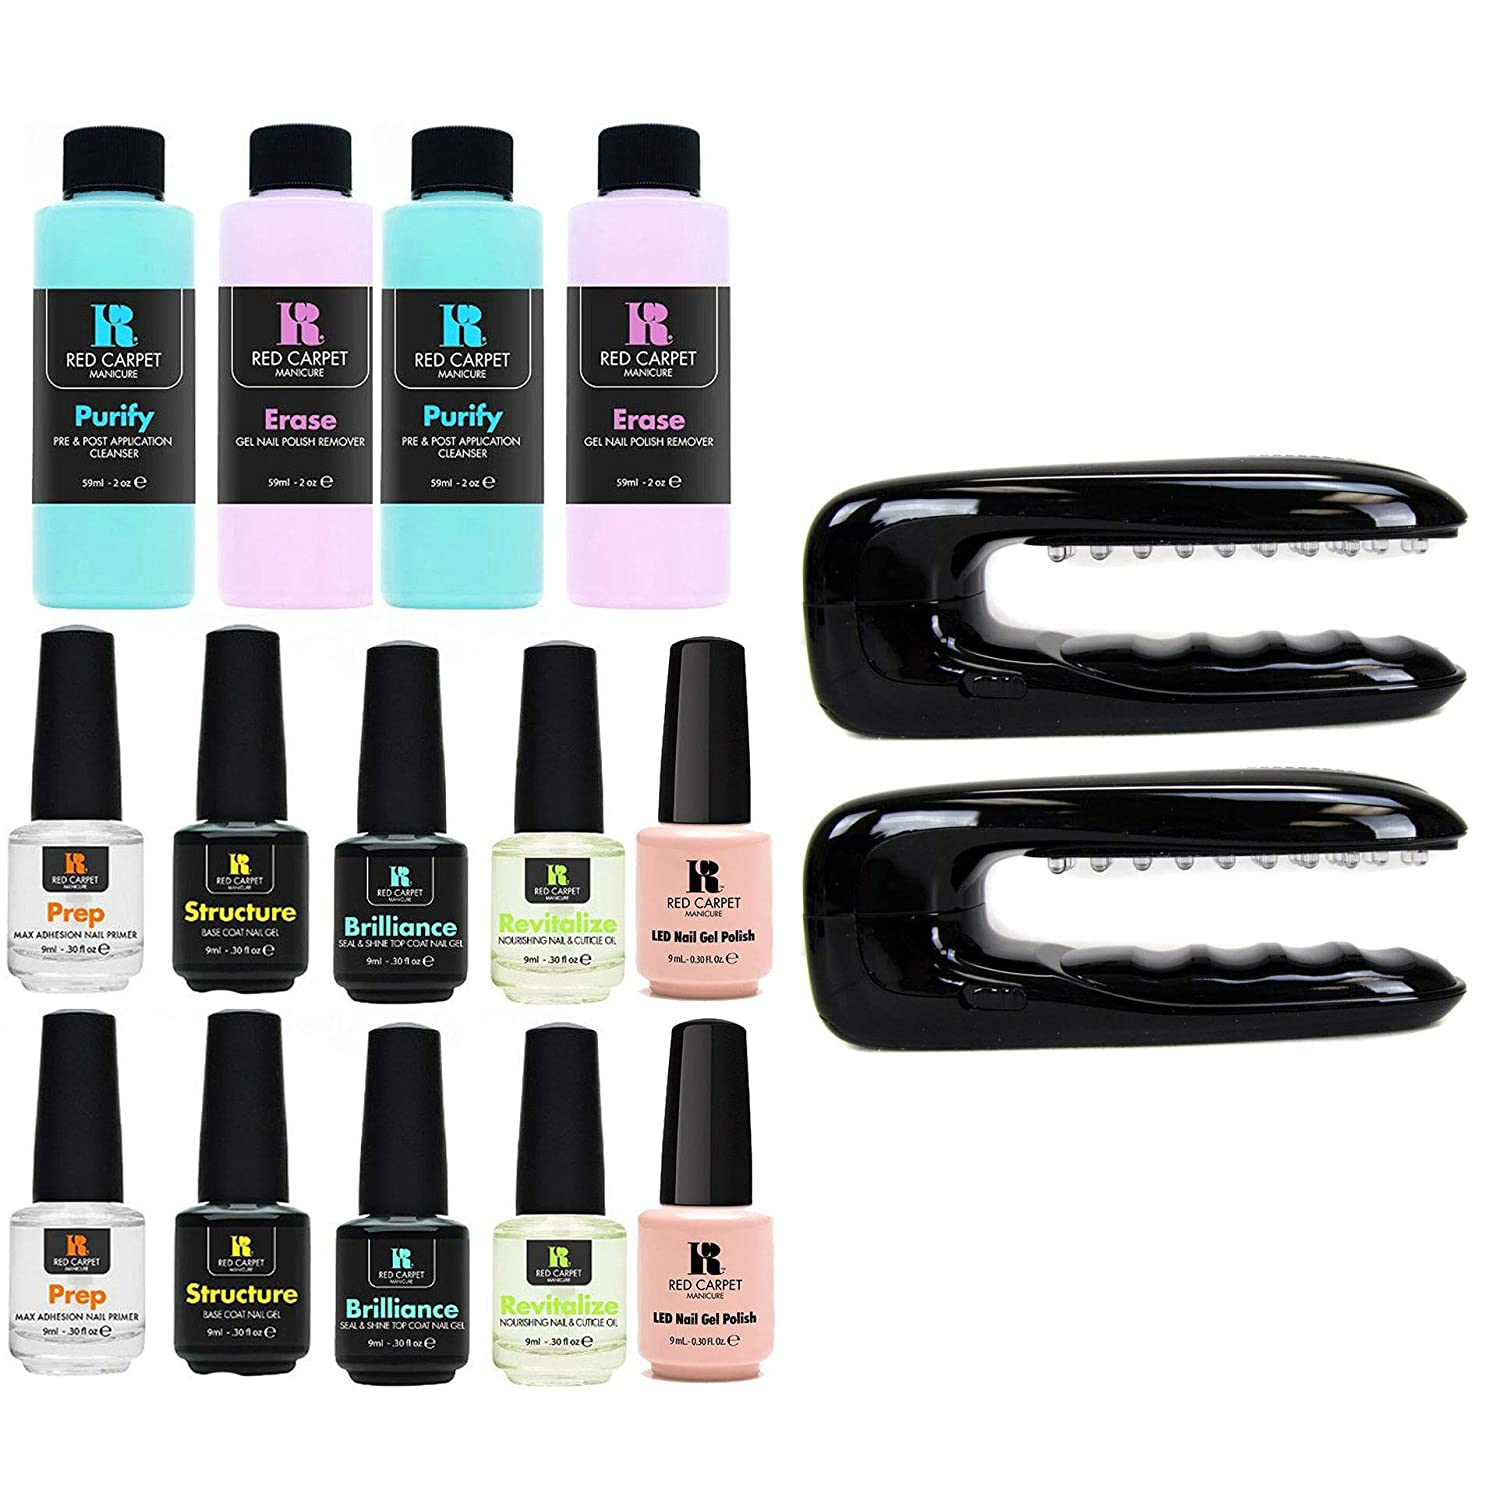 Nail Polish Package: Red Carpet Manicure LED Package Soak Off Gel Nail Polish